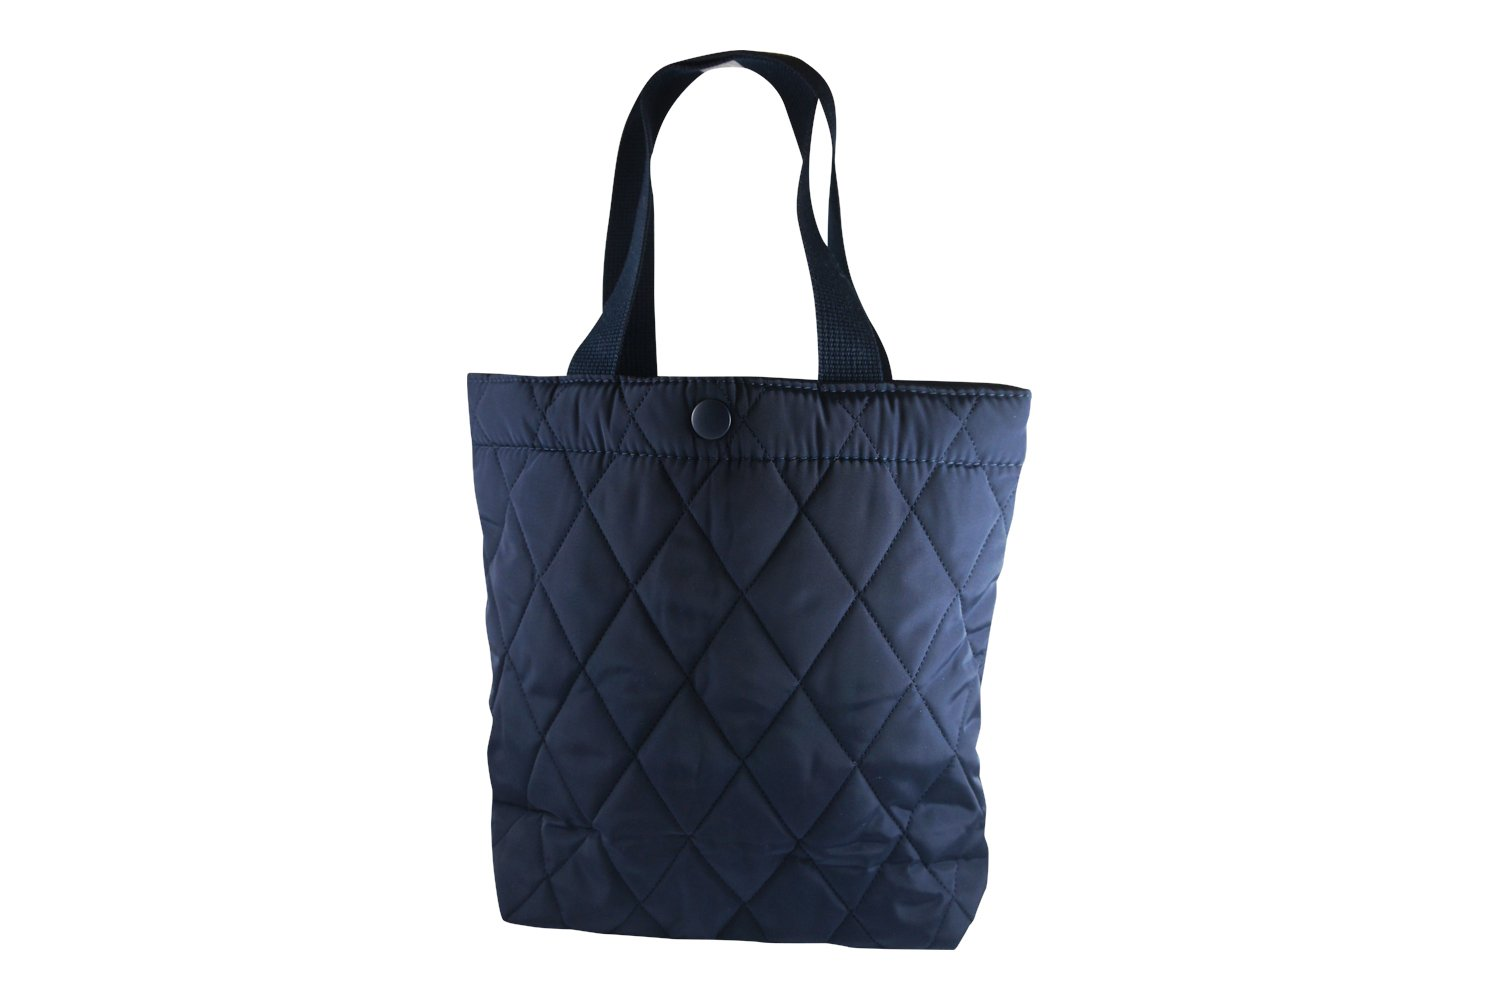 NUVELY Handbags Canvas Outdoor Multipurpose Daily Shoulder Tote Bag (Large, Navy)